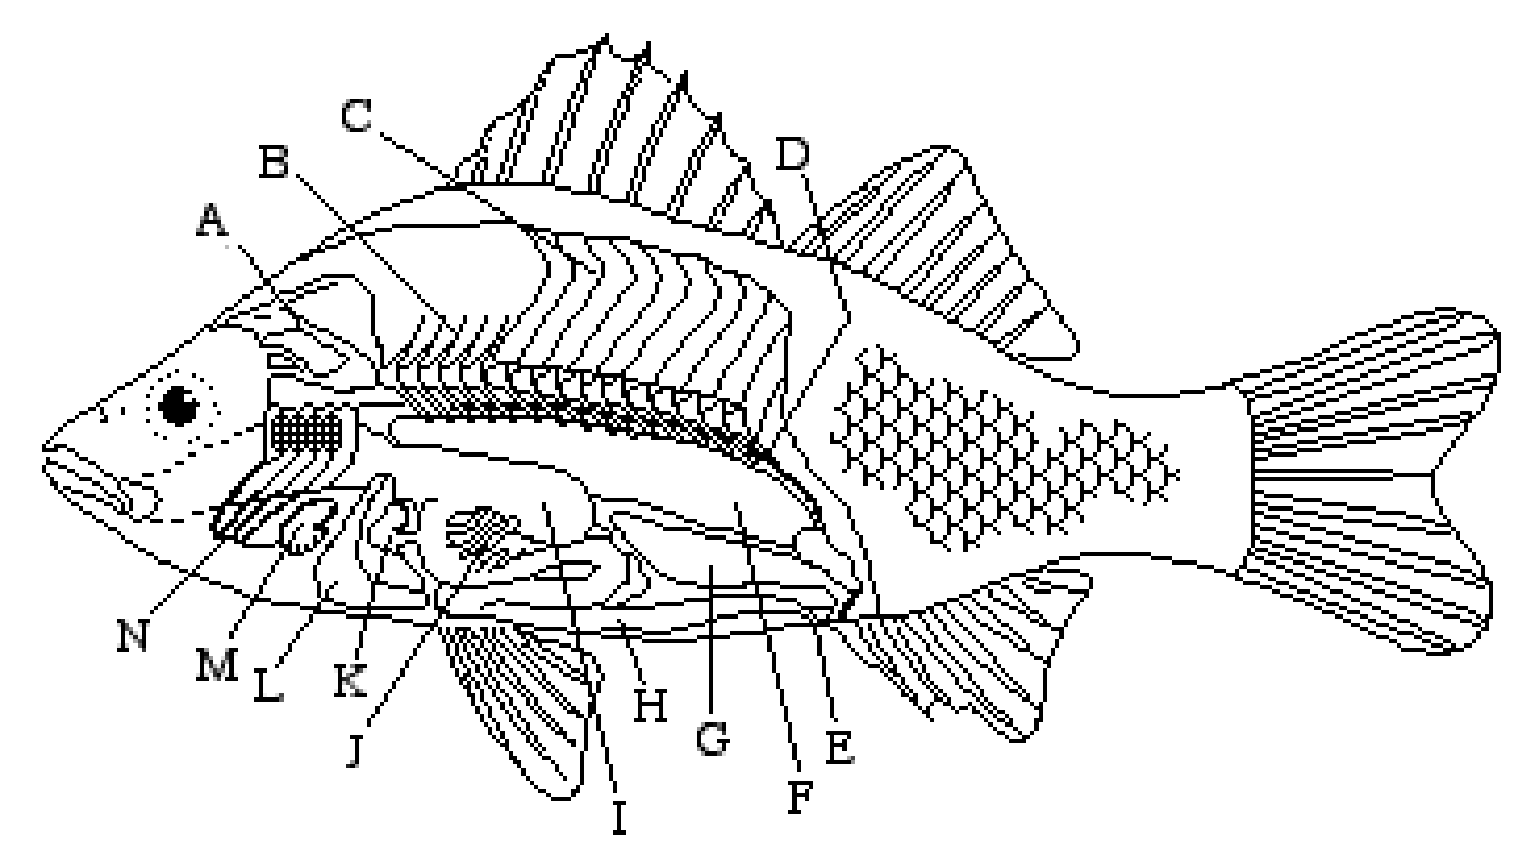 bony fish circulatory system diagram